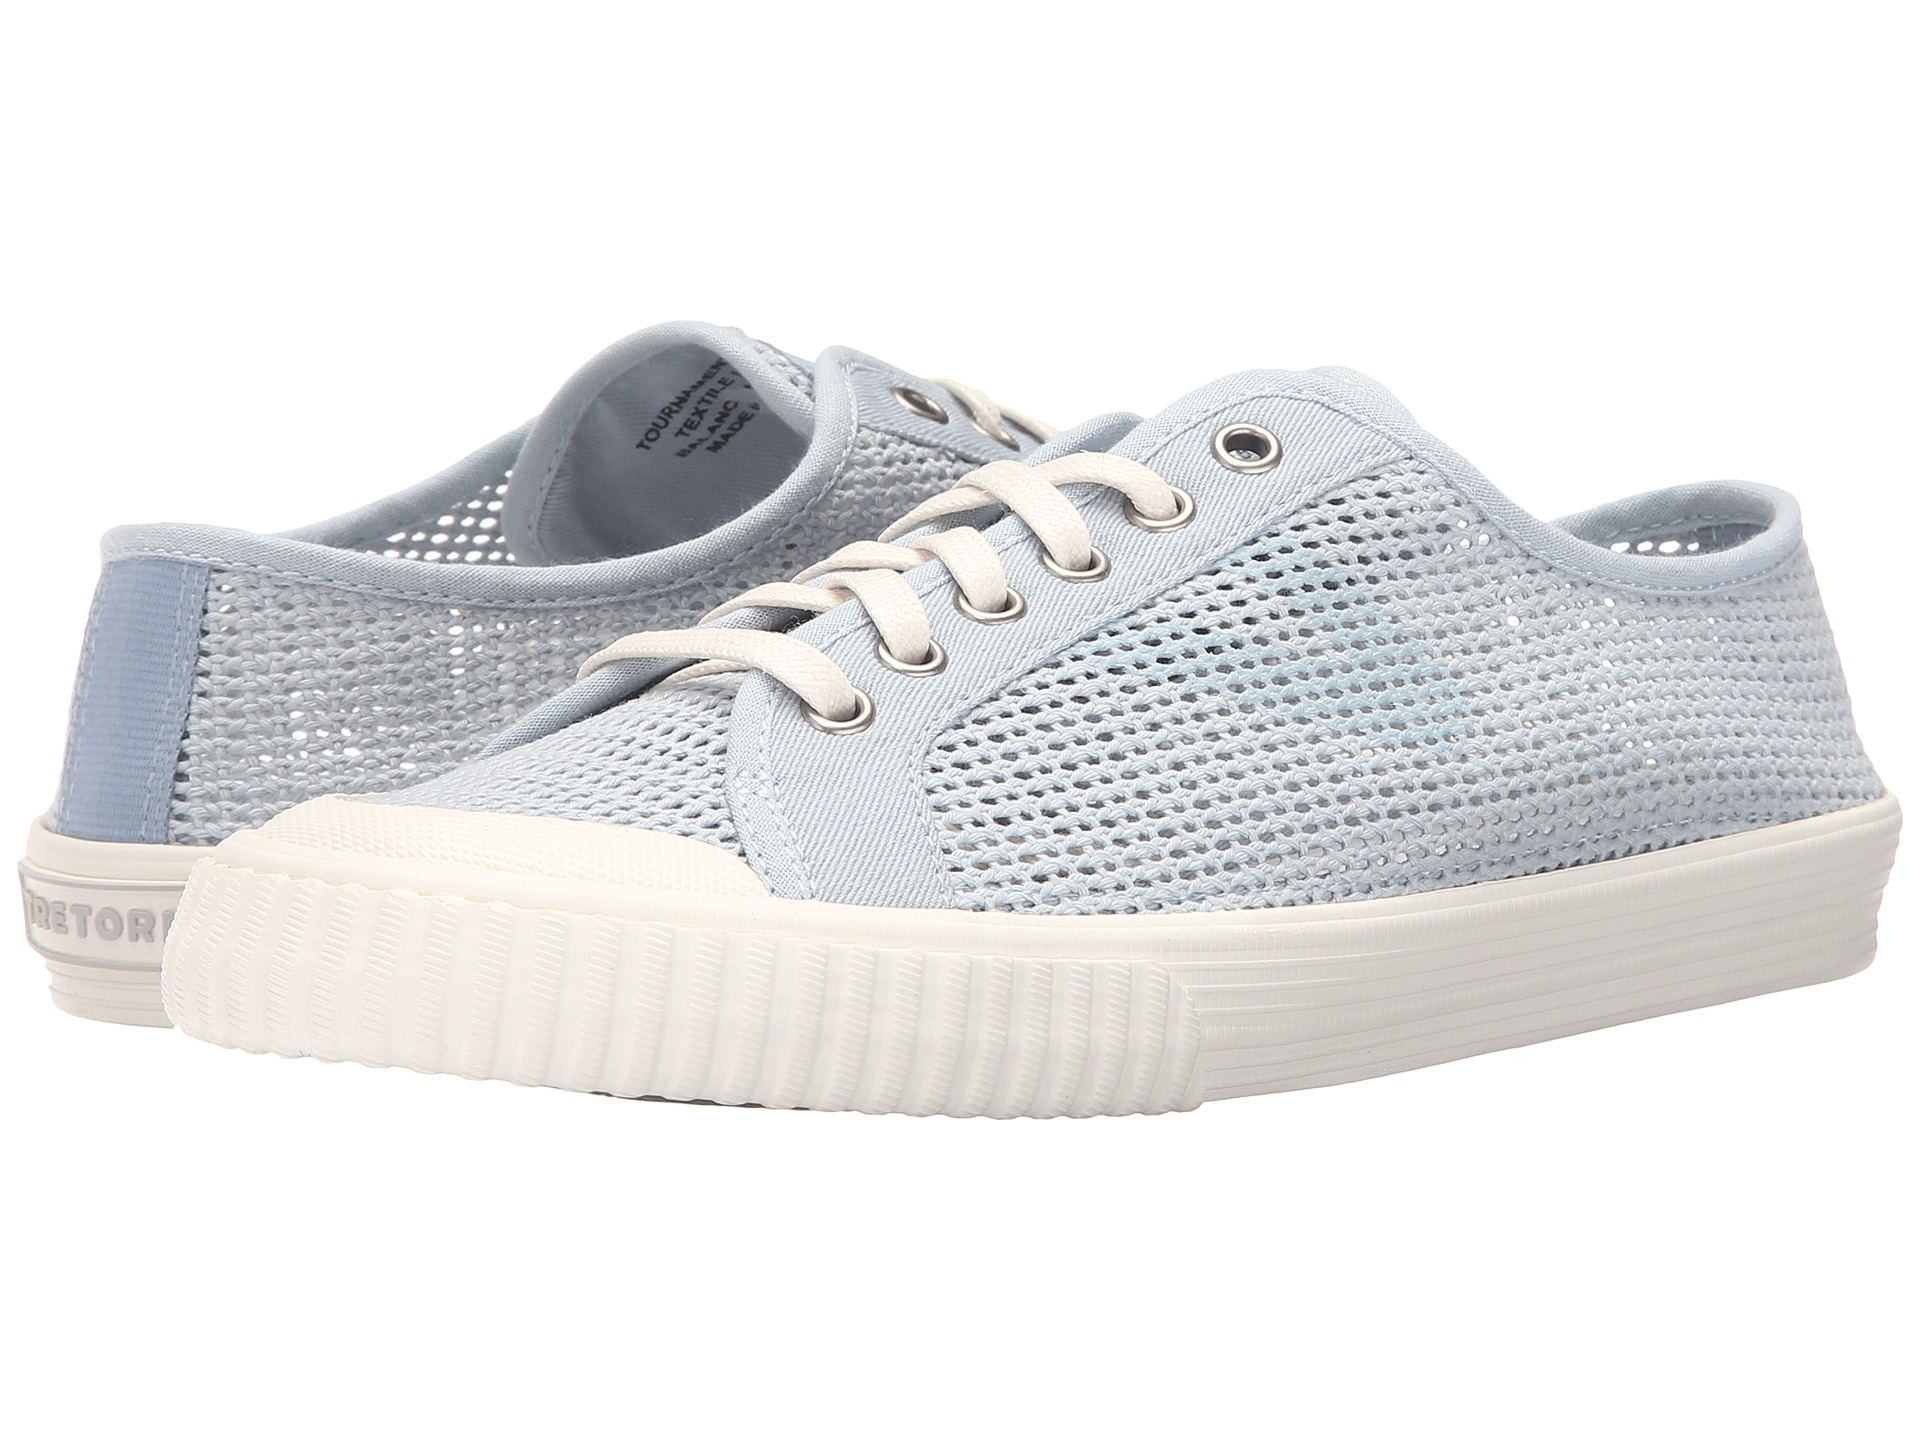 Tournamnet Net W, Womens Low-Top Sneakers Tretorn